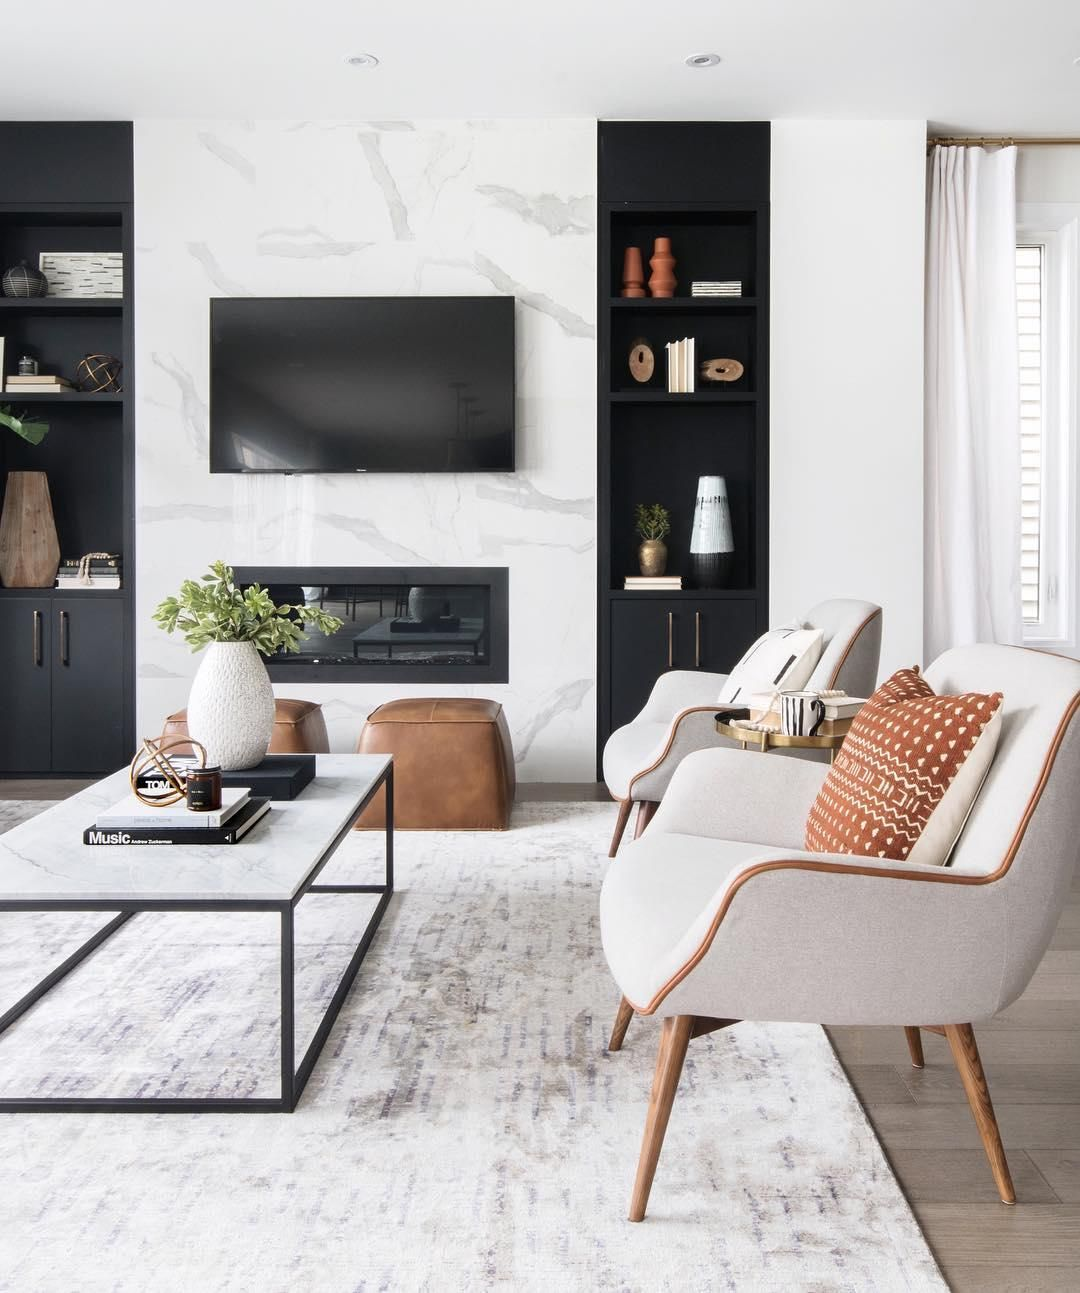 58 Lovely Living Room Design Ideas To Make Your Space Look Luxe